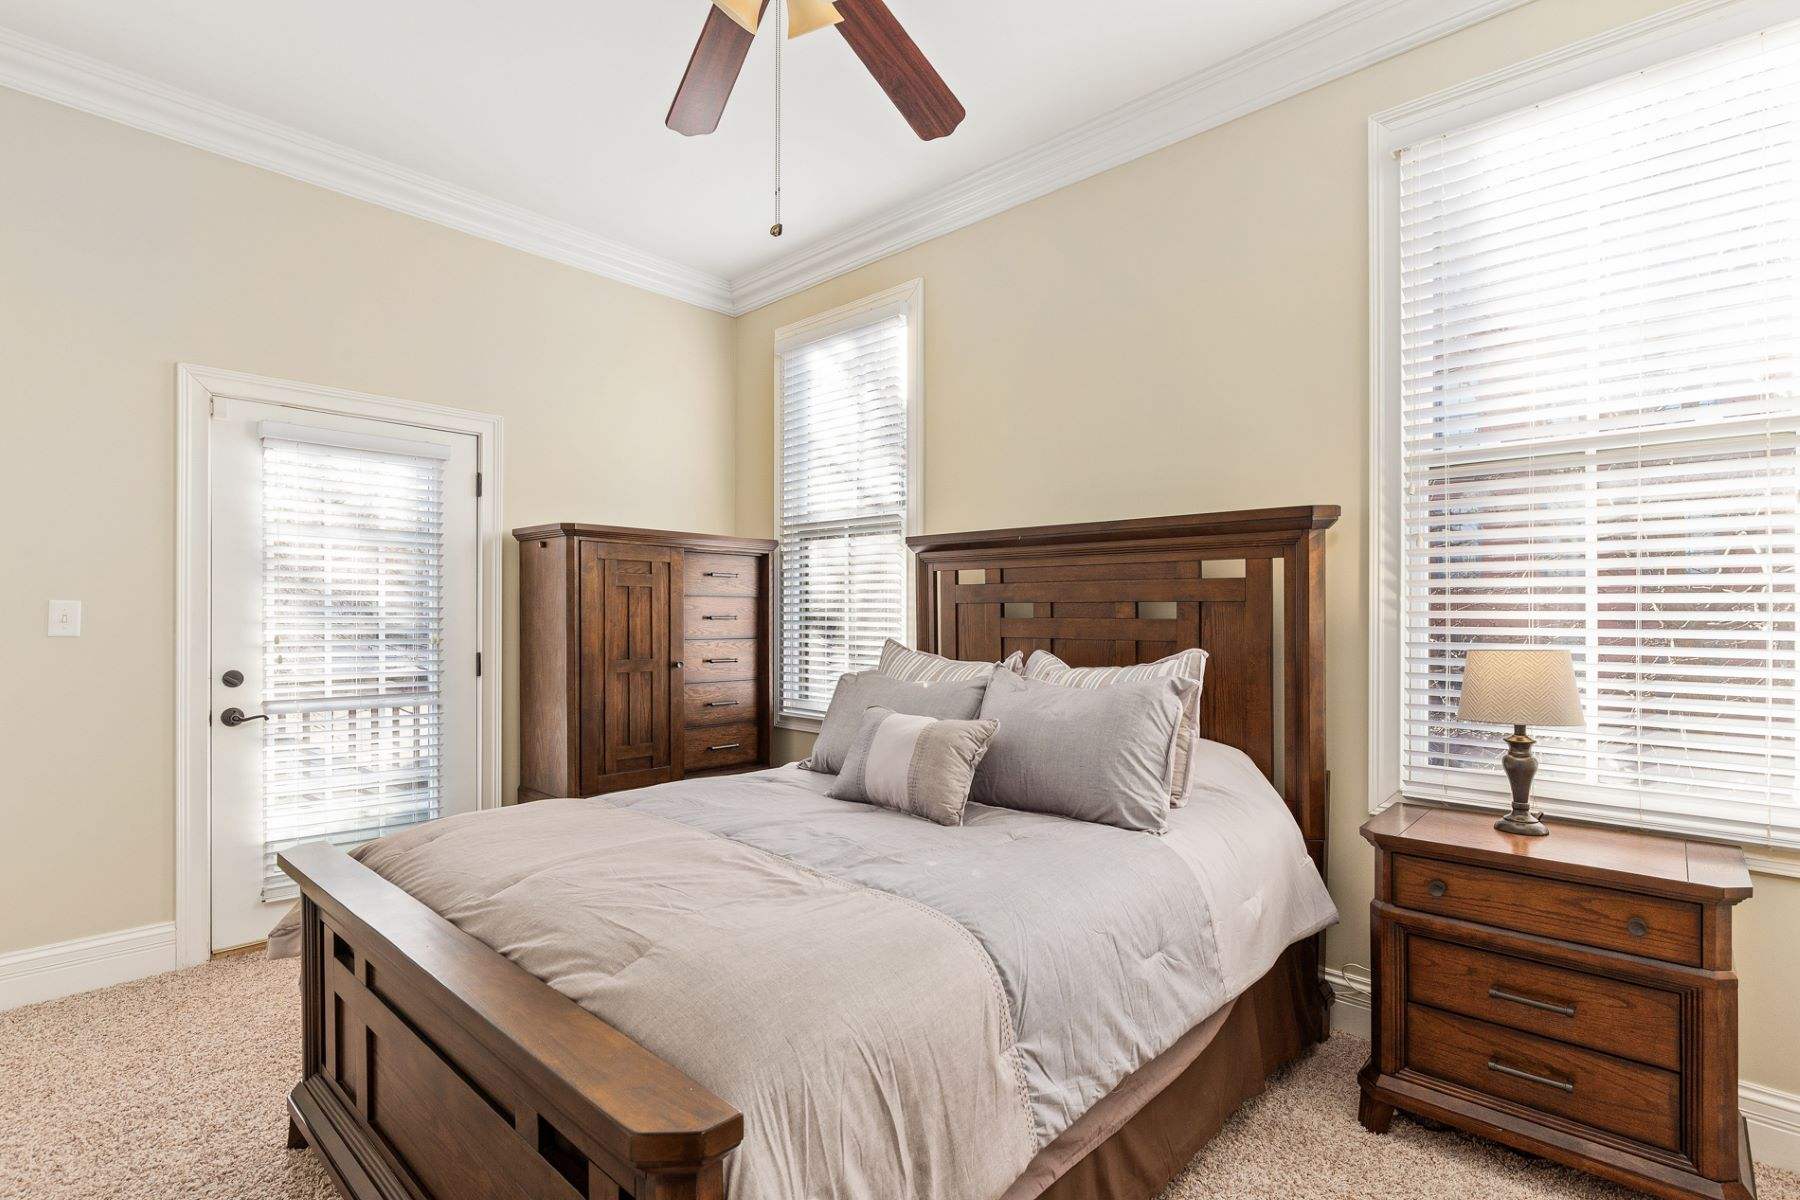 Additional photo for property listing at Lasalle Street, St. Louis, MO 63104 1928 Lasalle Street St. Louis, Missouri 63104 United States